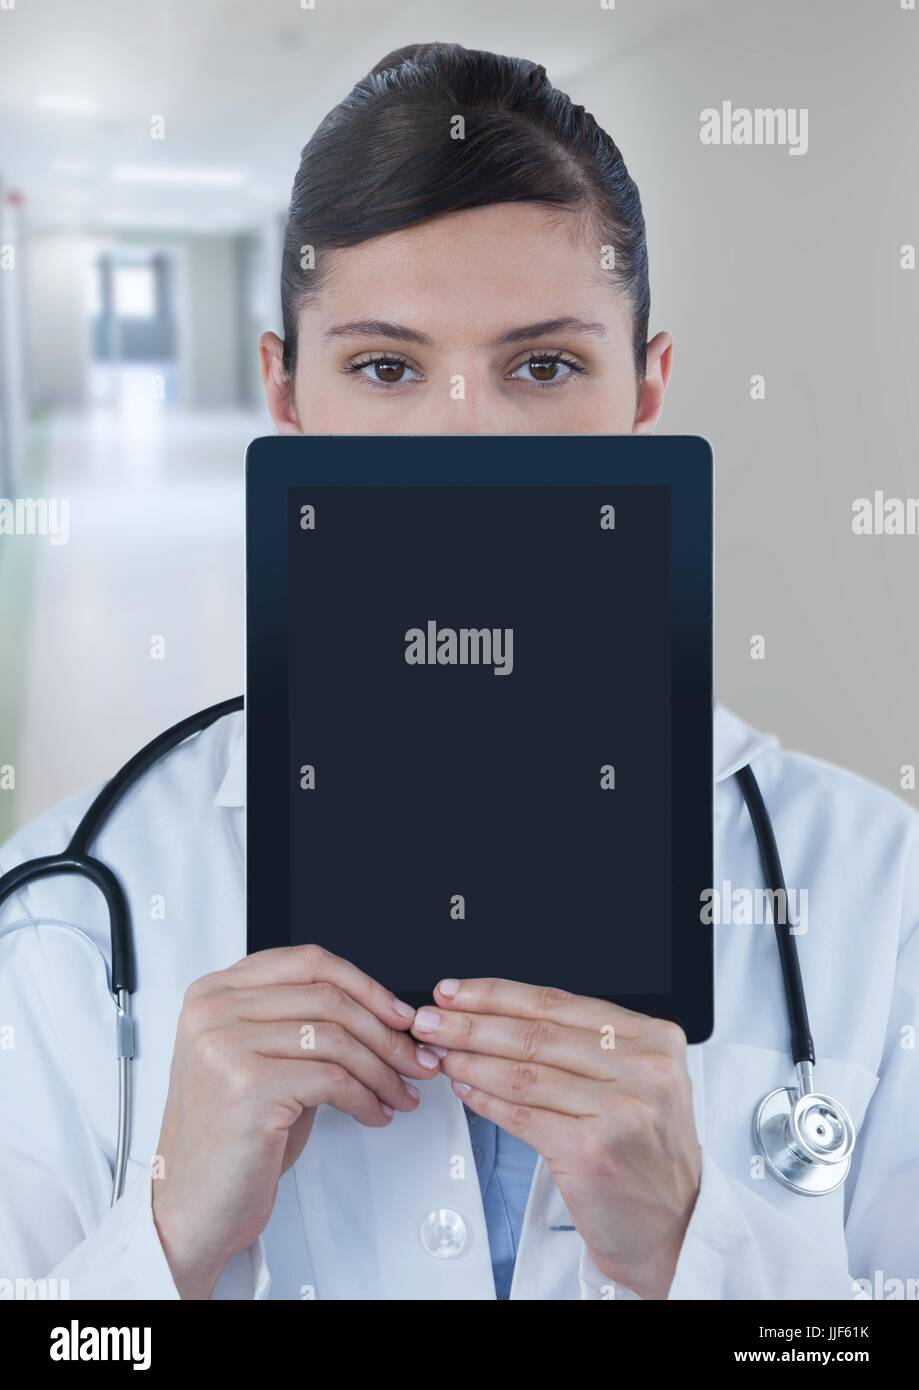 Digital composite of Doctor holding tablet over face in corridor - Stock Image